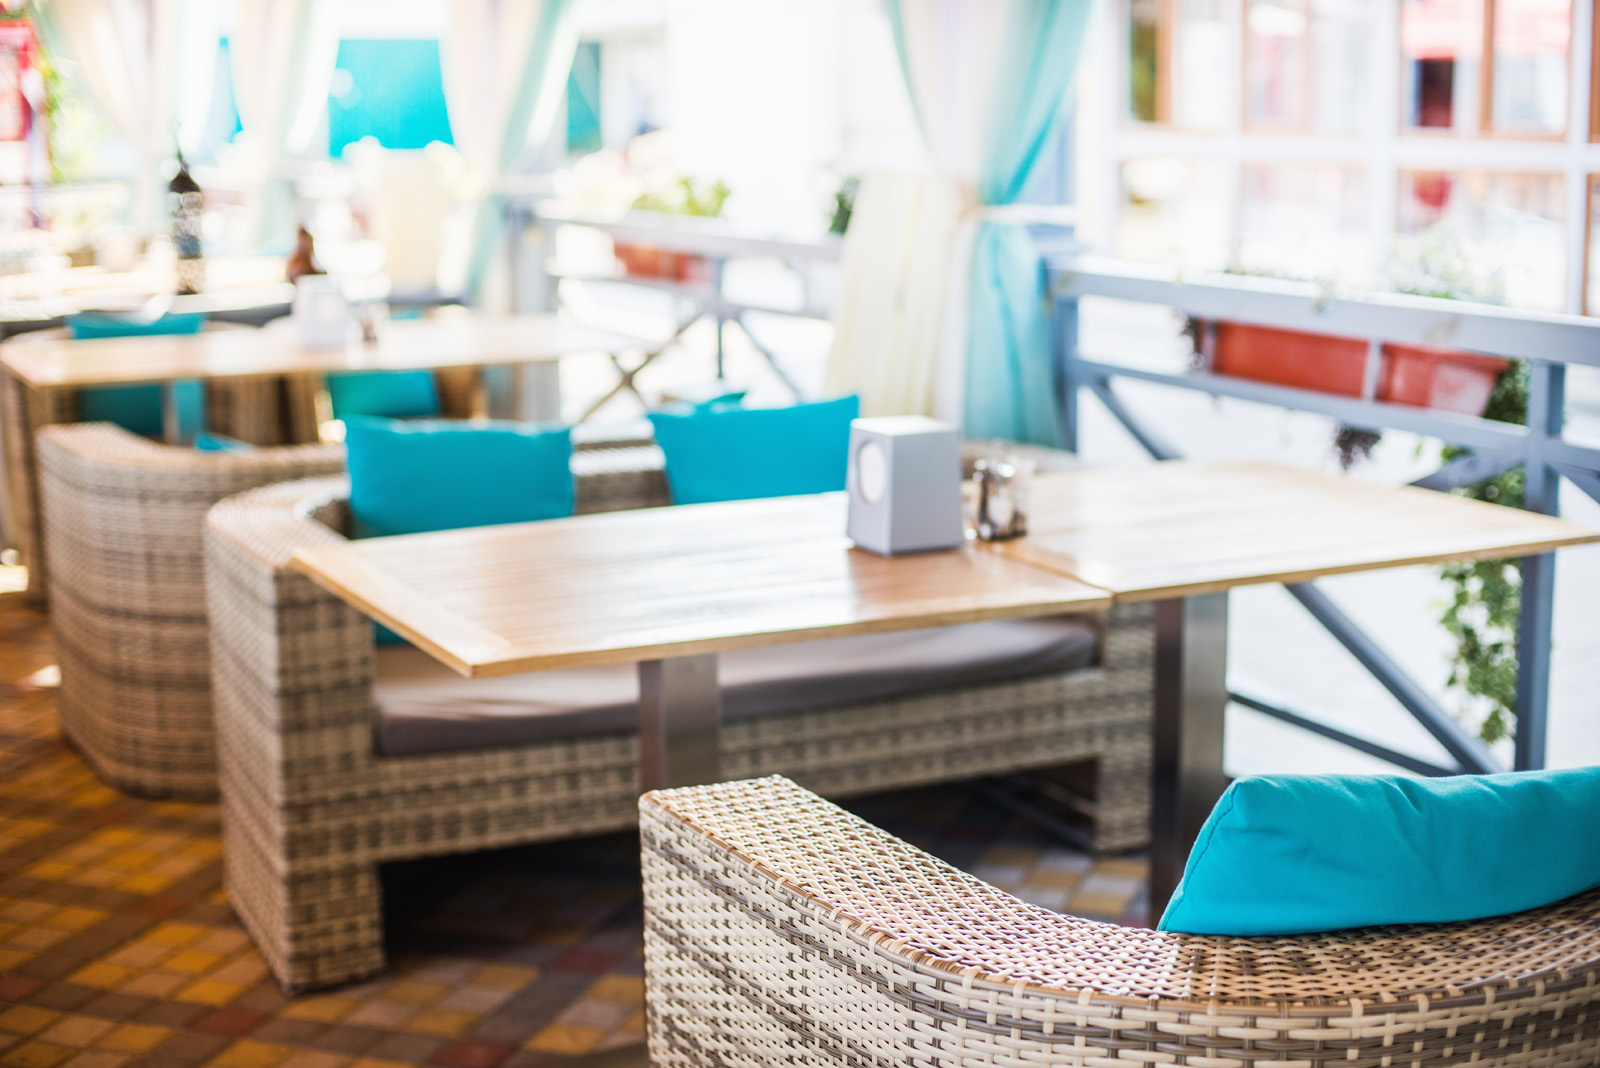 Restaurant tables and chairs inside 51429